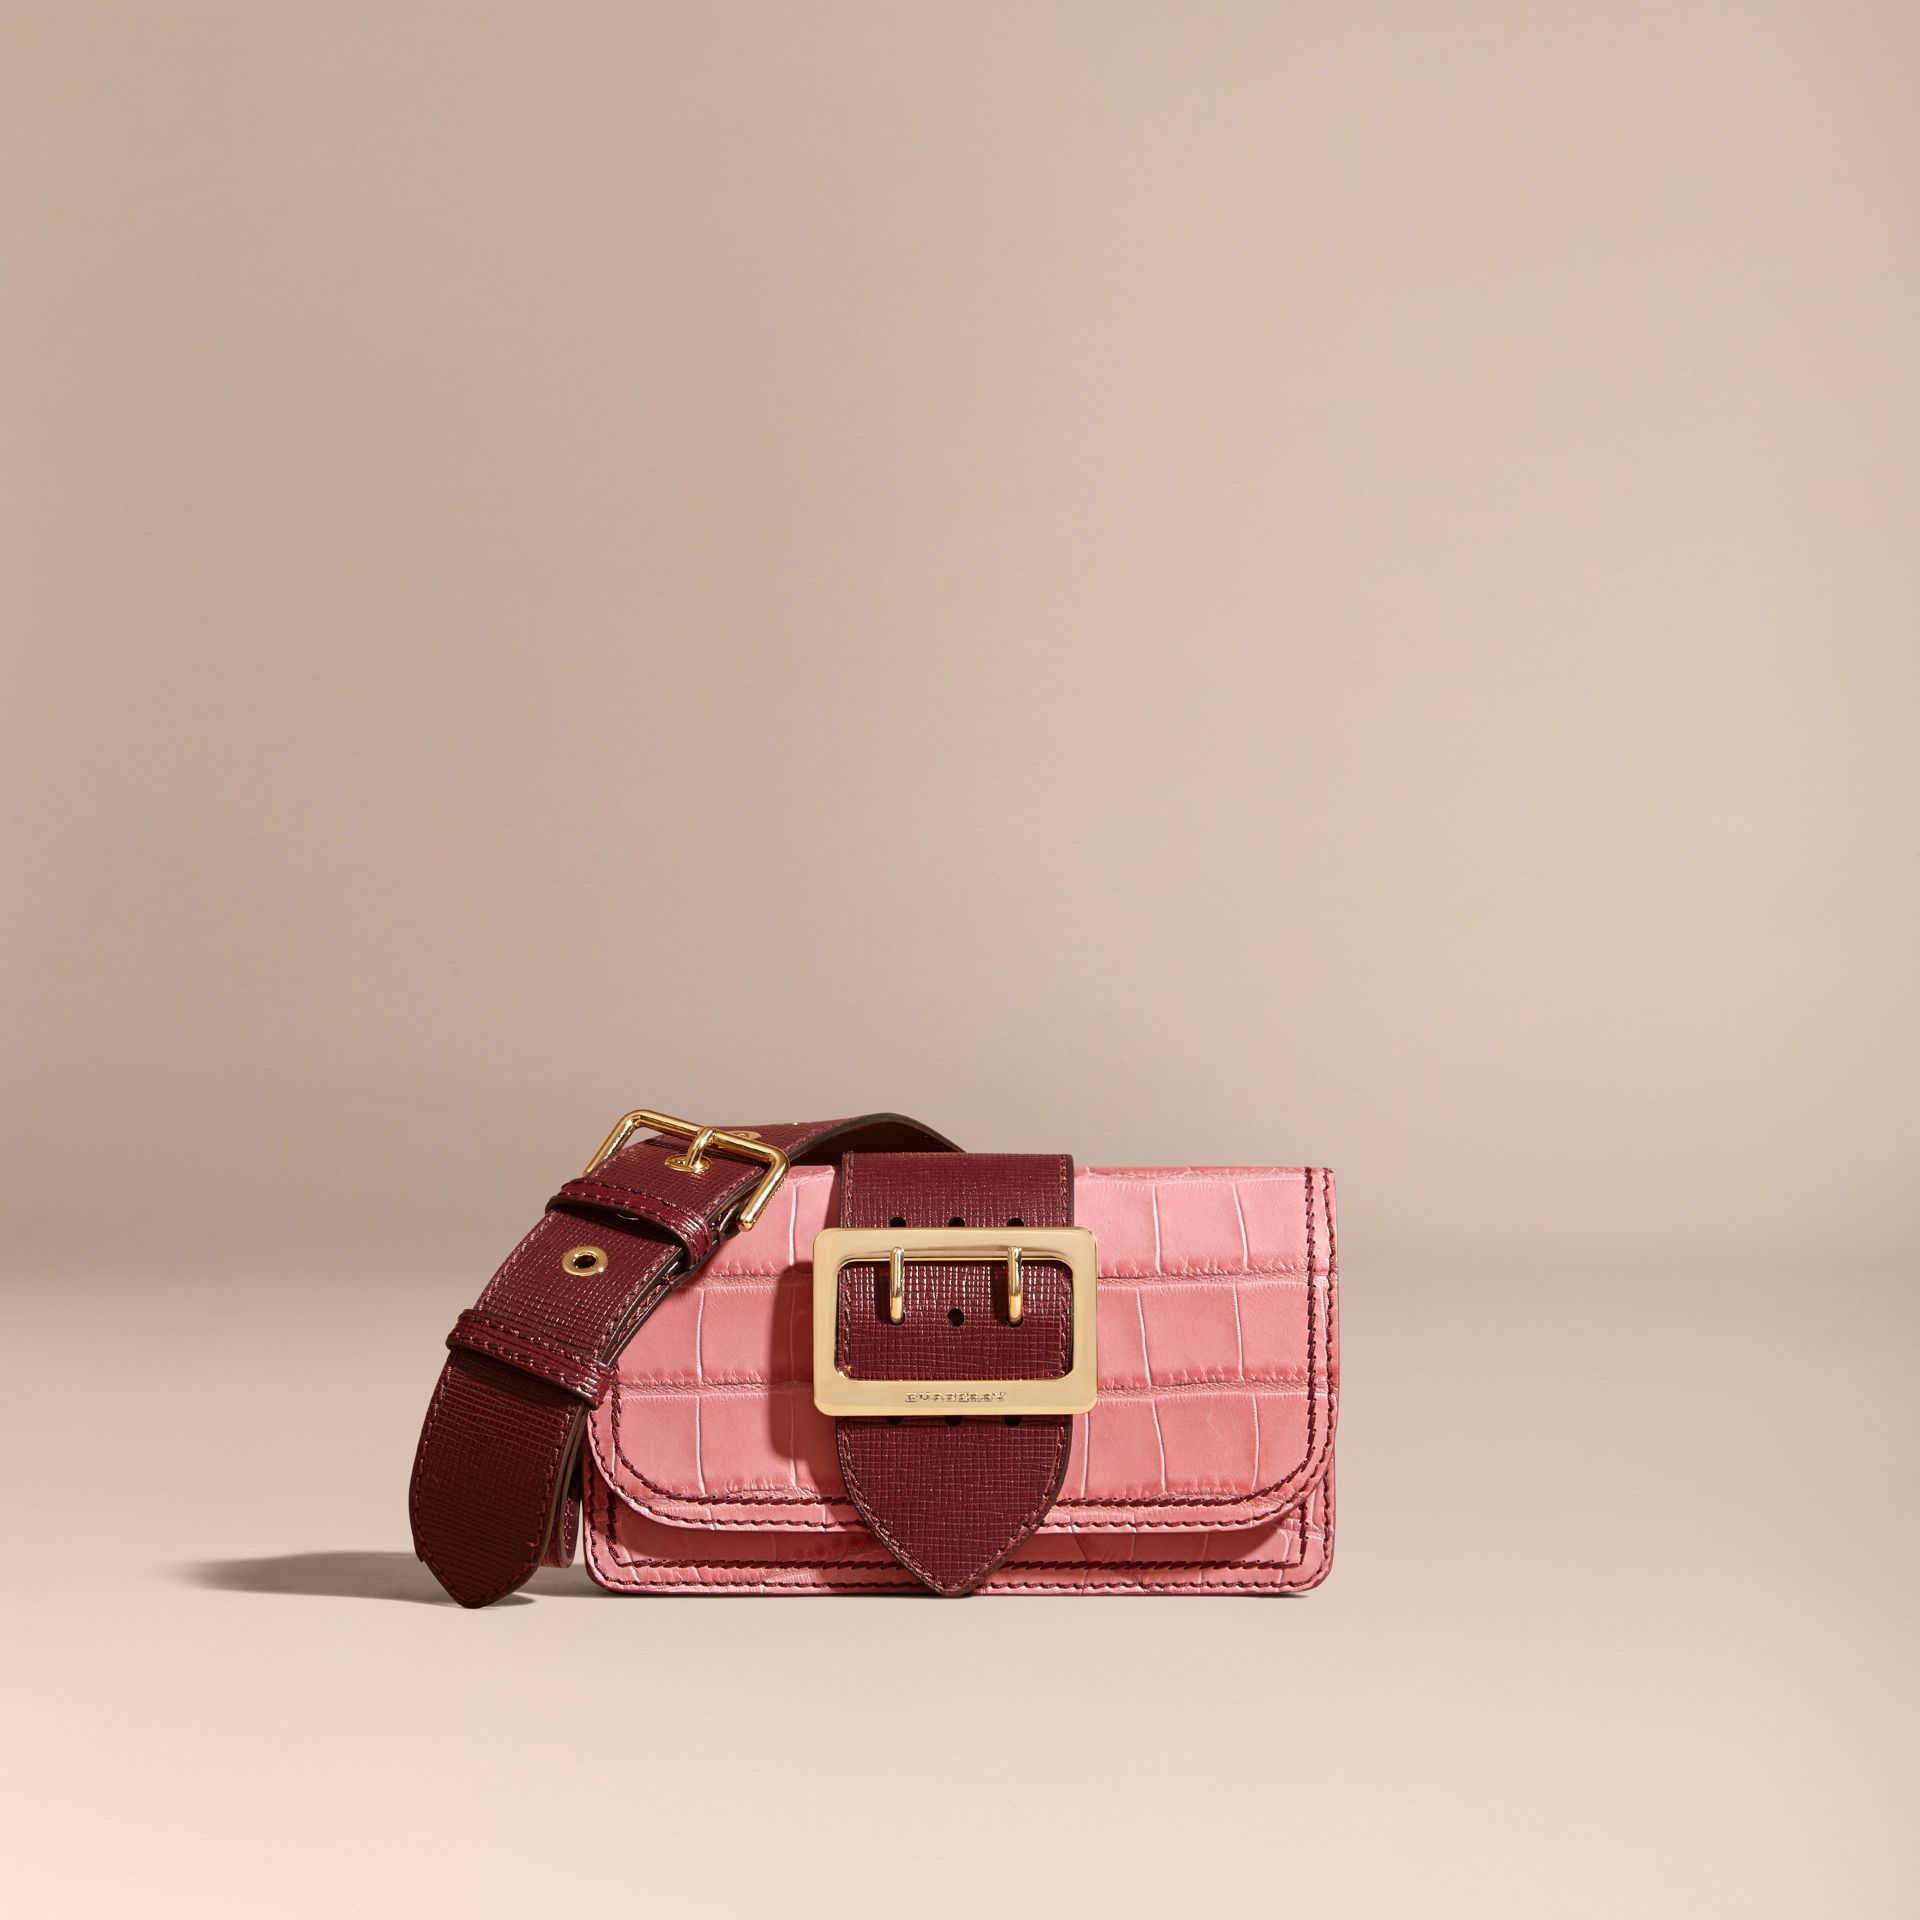 The Small Buckle Bag in Alligator and Leather in Dusky Pink/ Burgundy - Women | Burberry United Kingdom - gallery image 9